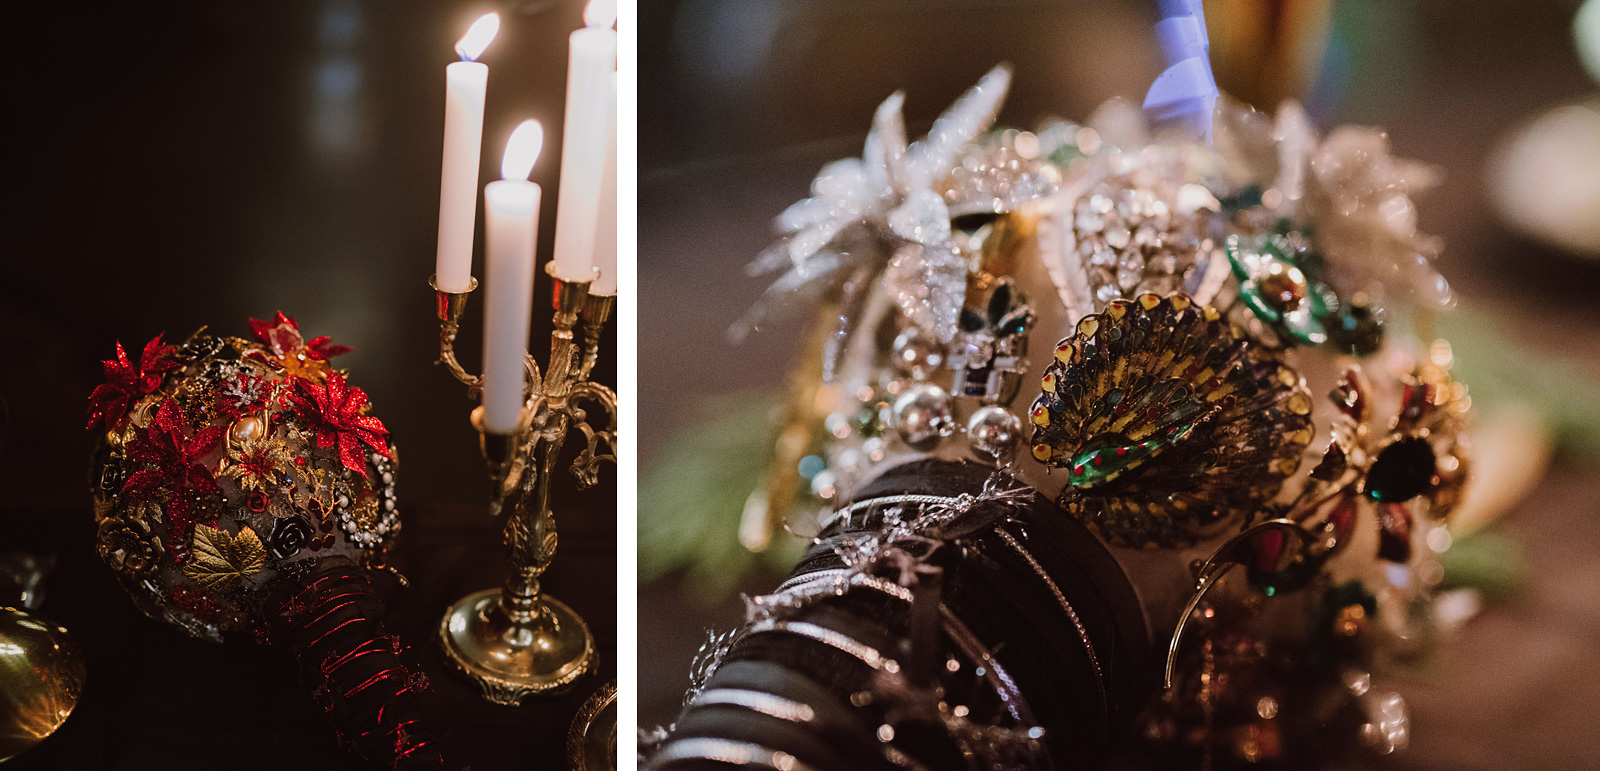 Brooch bouquets for the bride and maid of honor at The Colony St Johns Wedding